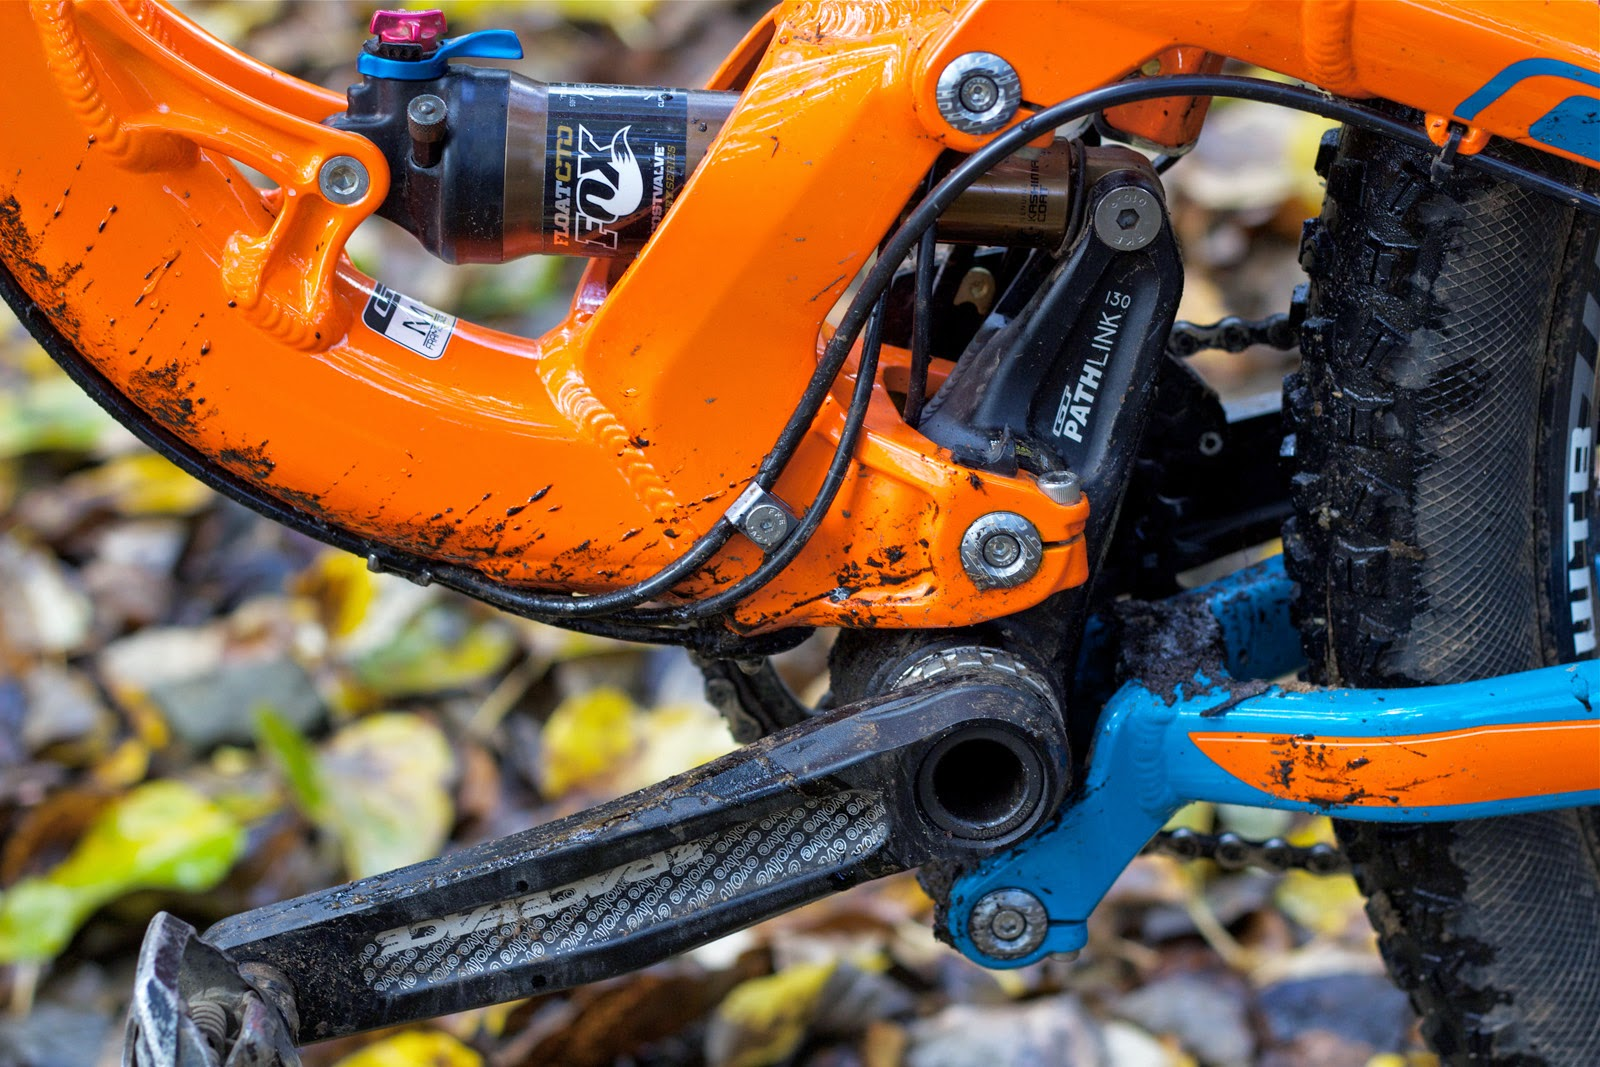 Bike News, New Bike, New Product, Suspension System, Report, GT sensor x pro, gt sensor x pro review